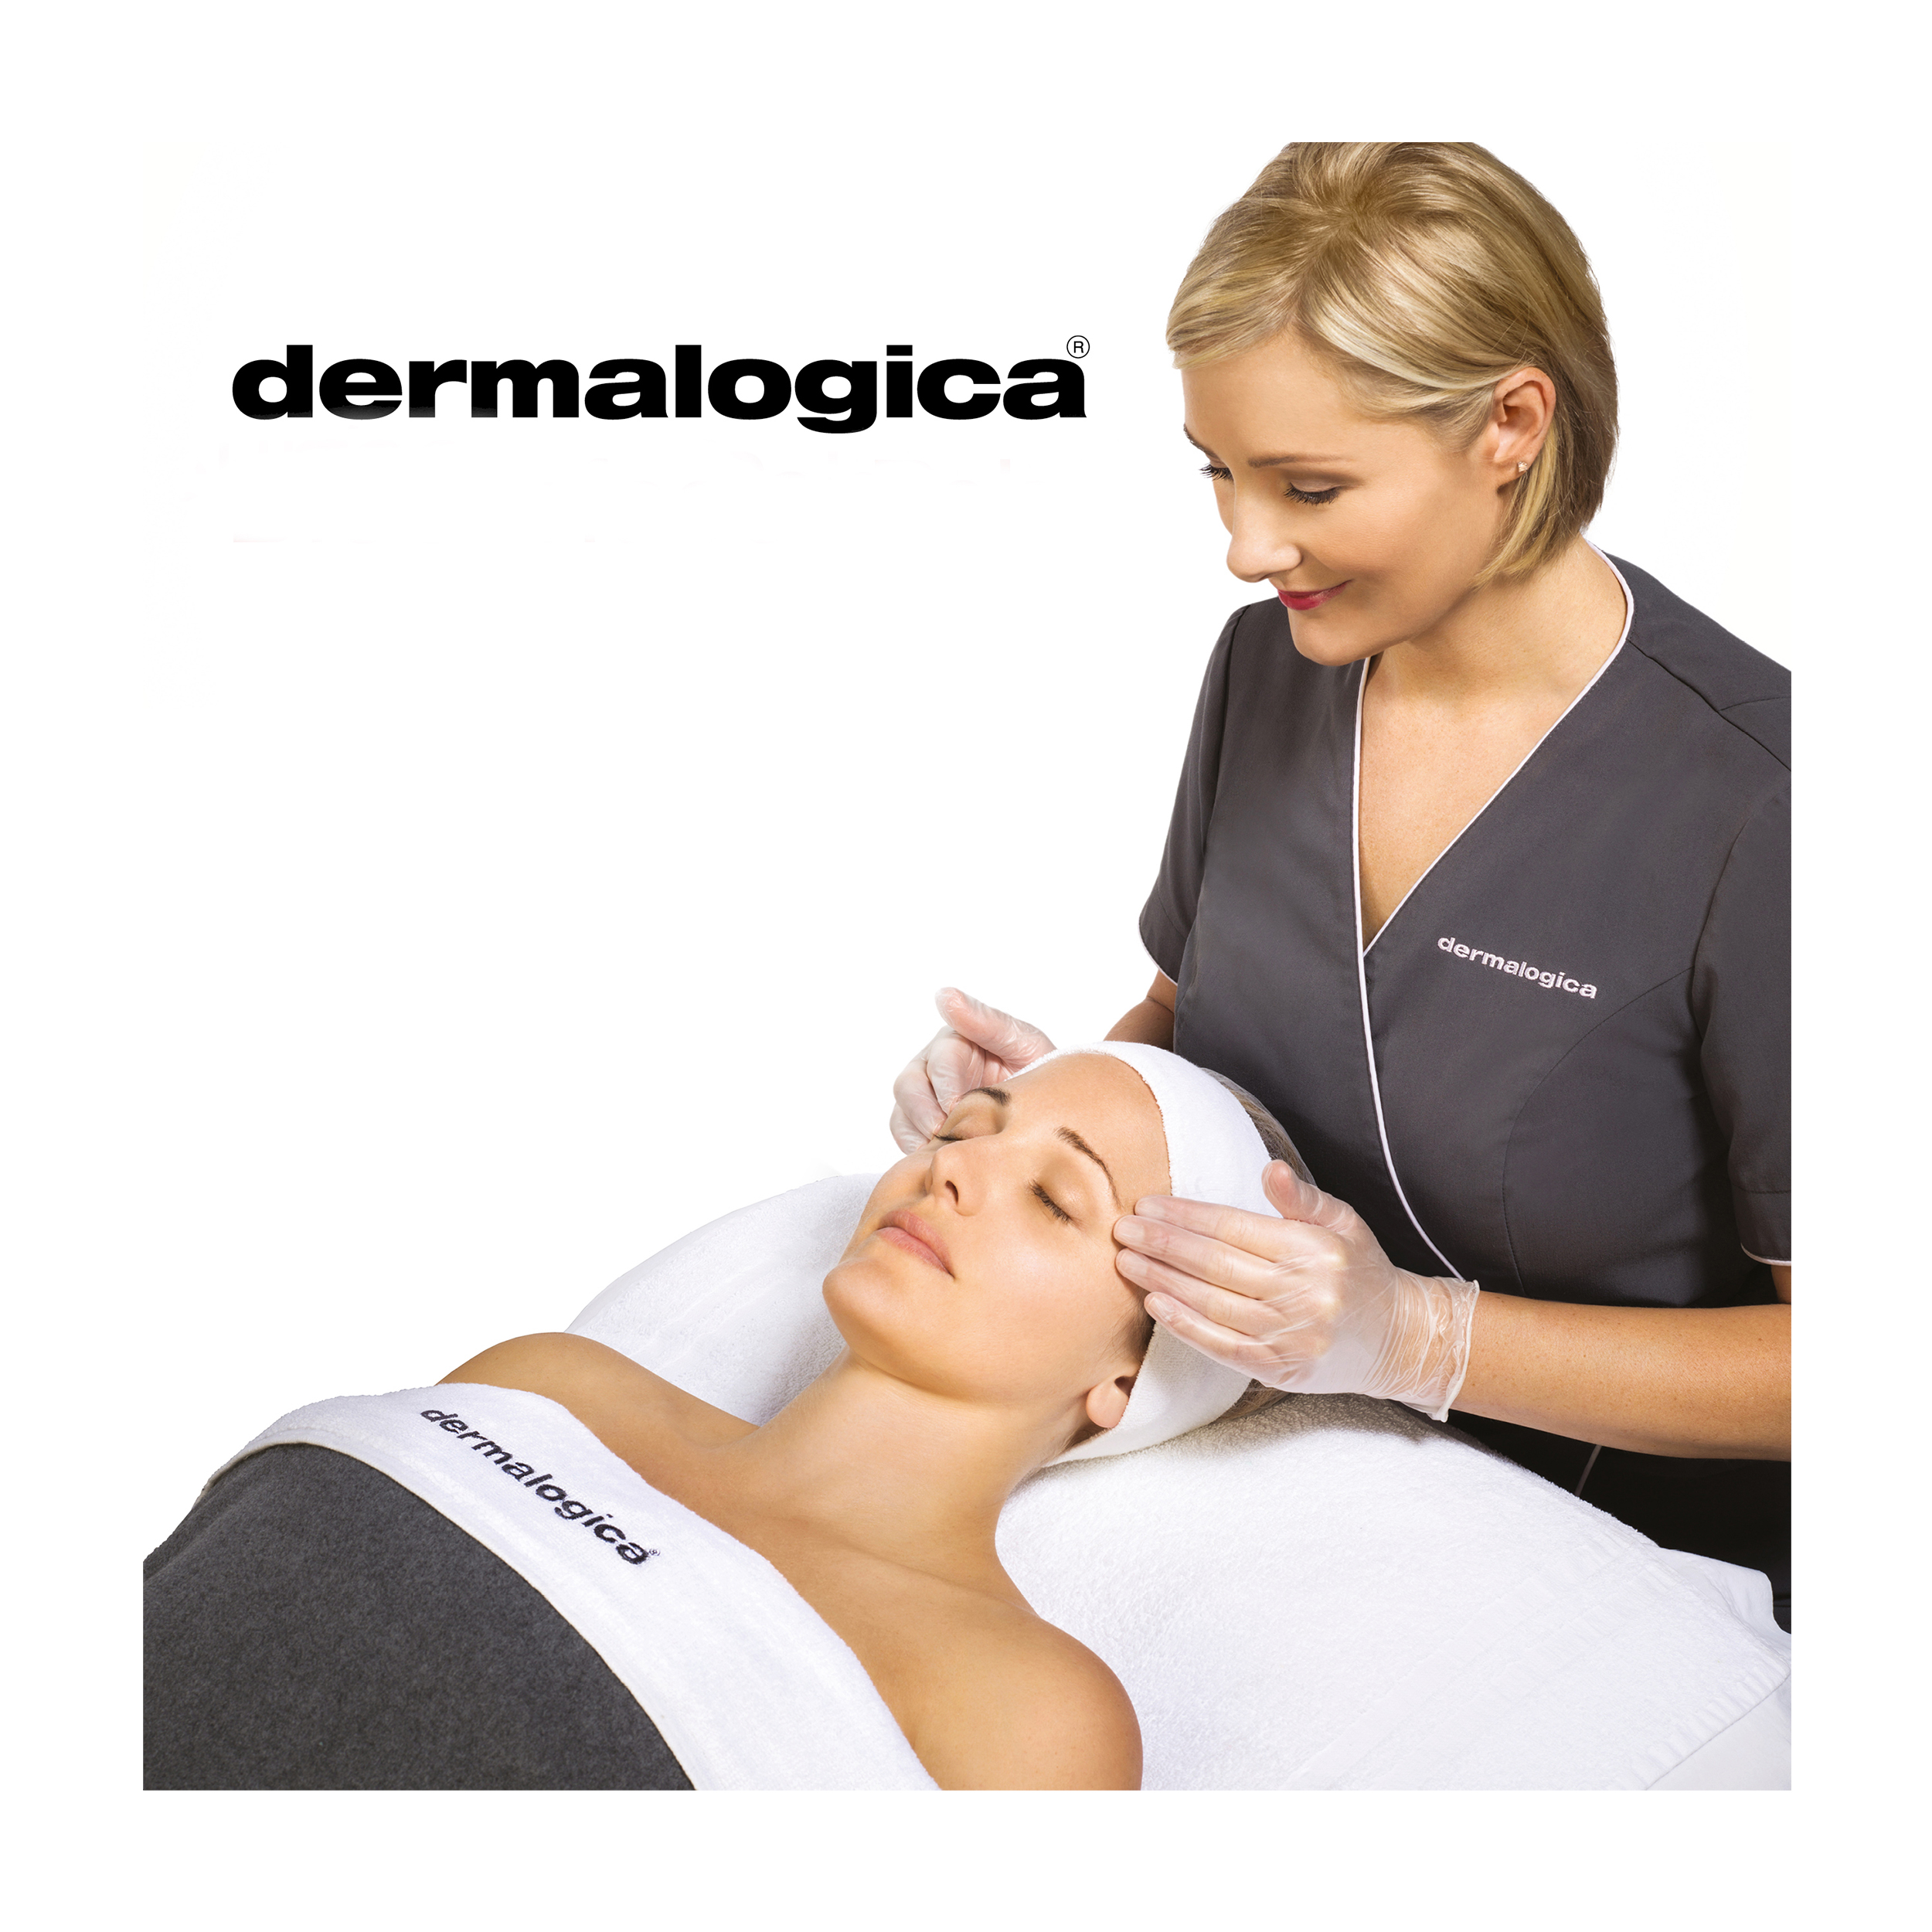 Dermalogica Facial Brezze Beauty Salon Weymouth Dorset